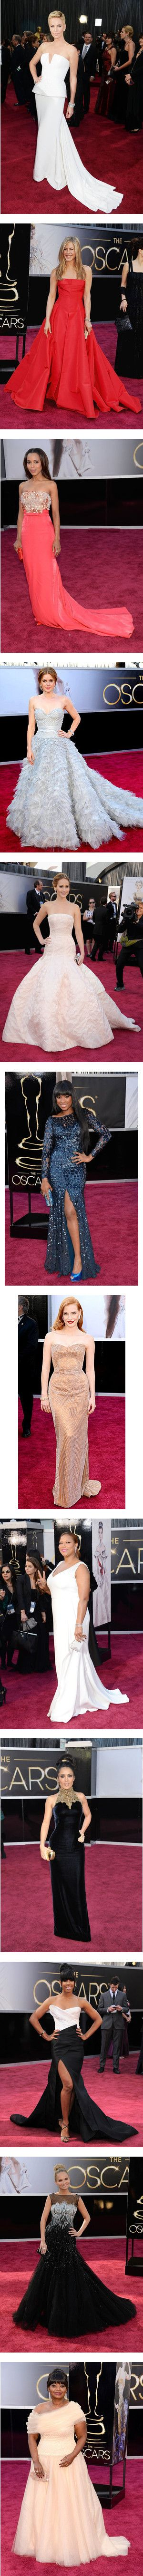 """""""Award Shows 2013"""" by kiteshop ❤ liked on Polyvore"""